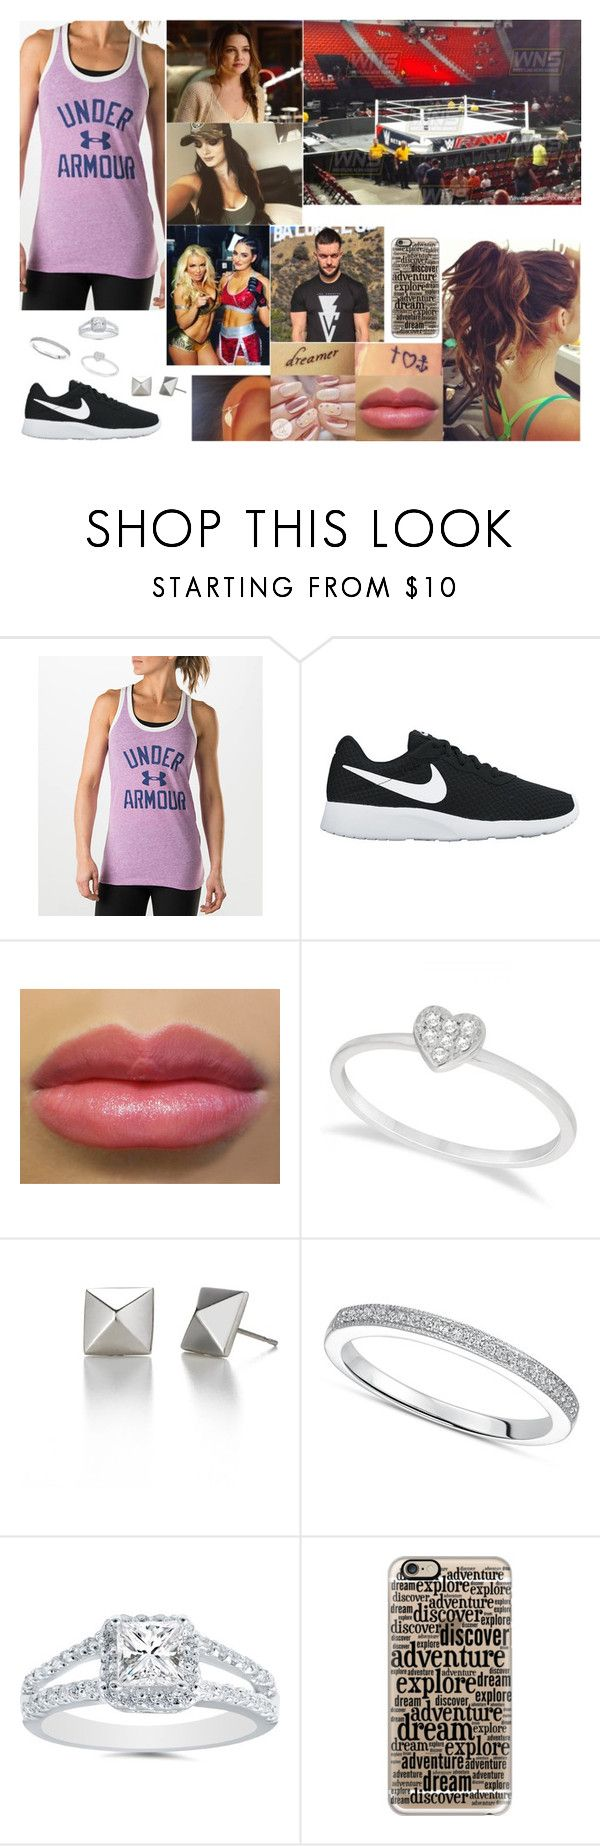 """""I Don't Need Your Concern..."" (Description)"" by samanthanicole39 ❤ liked on Polyvore featuring Under Armour, NIKE, Allurez, WWE and Casetify"